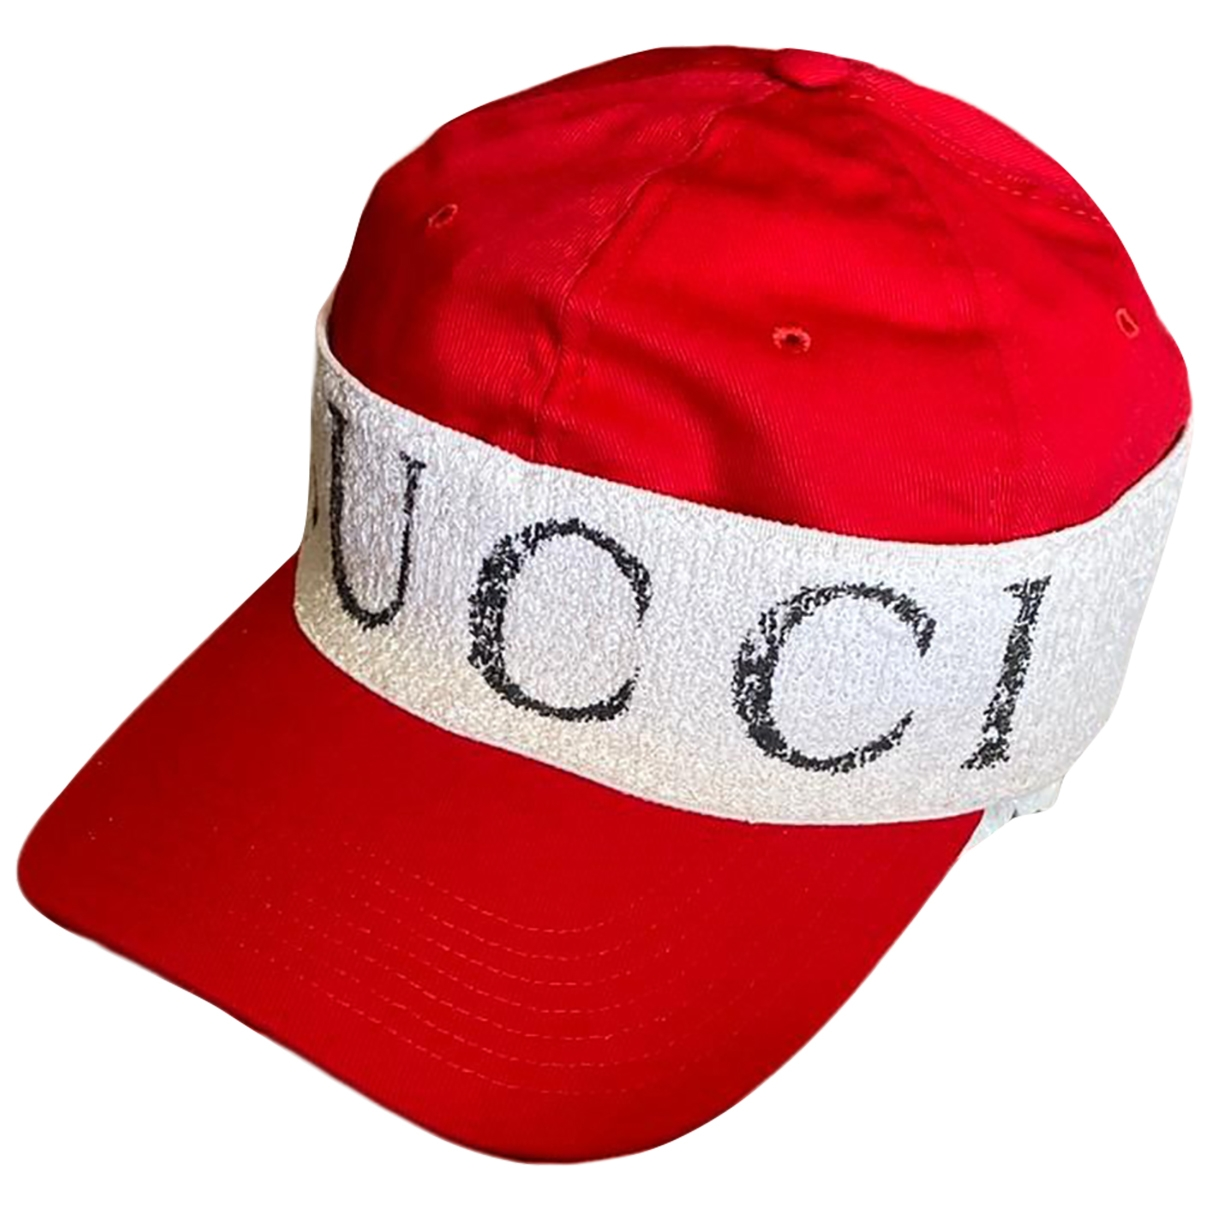 Gucci \N Red Cloth hat & pull on hat for Men M International